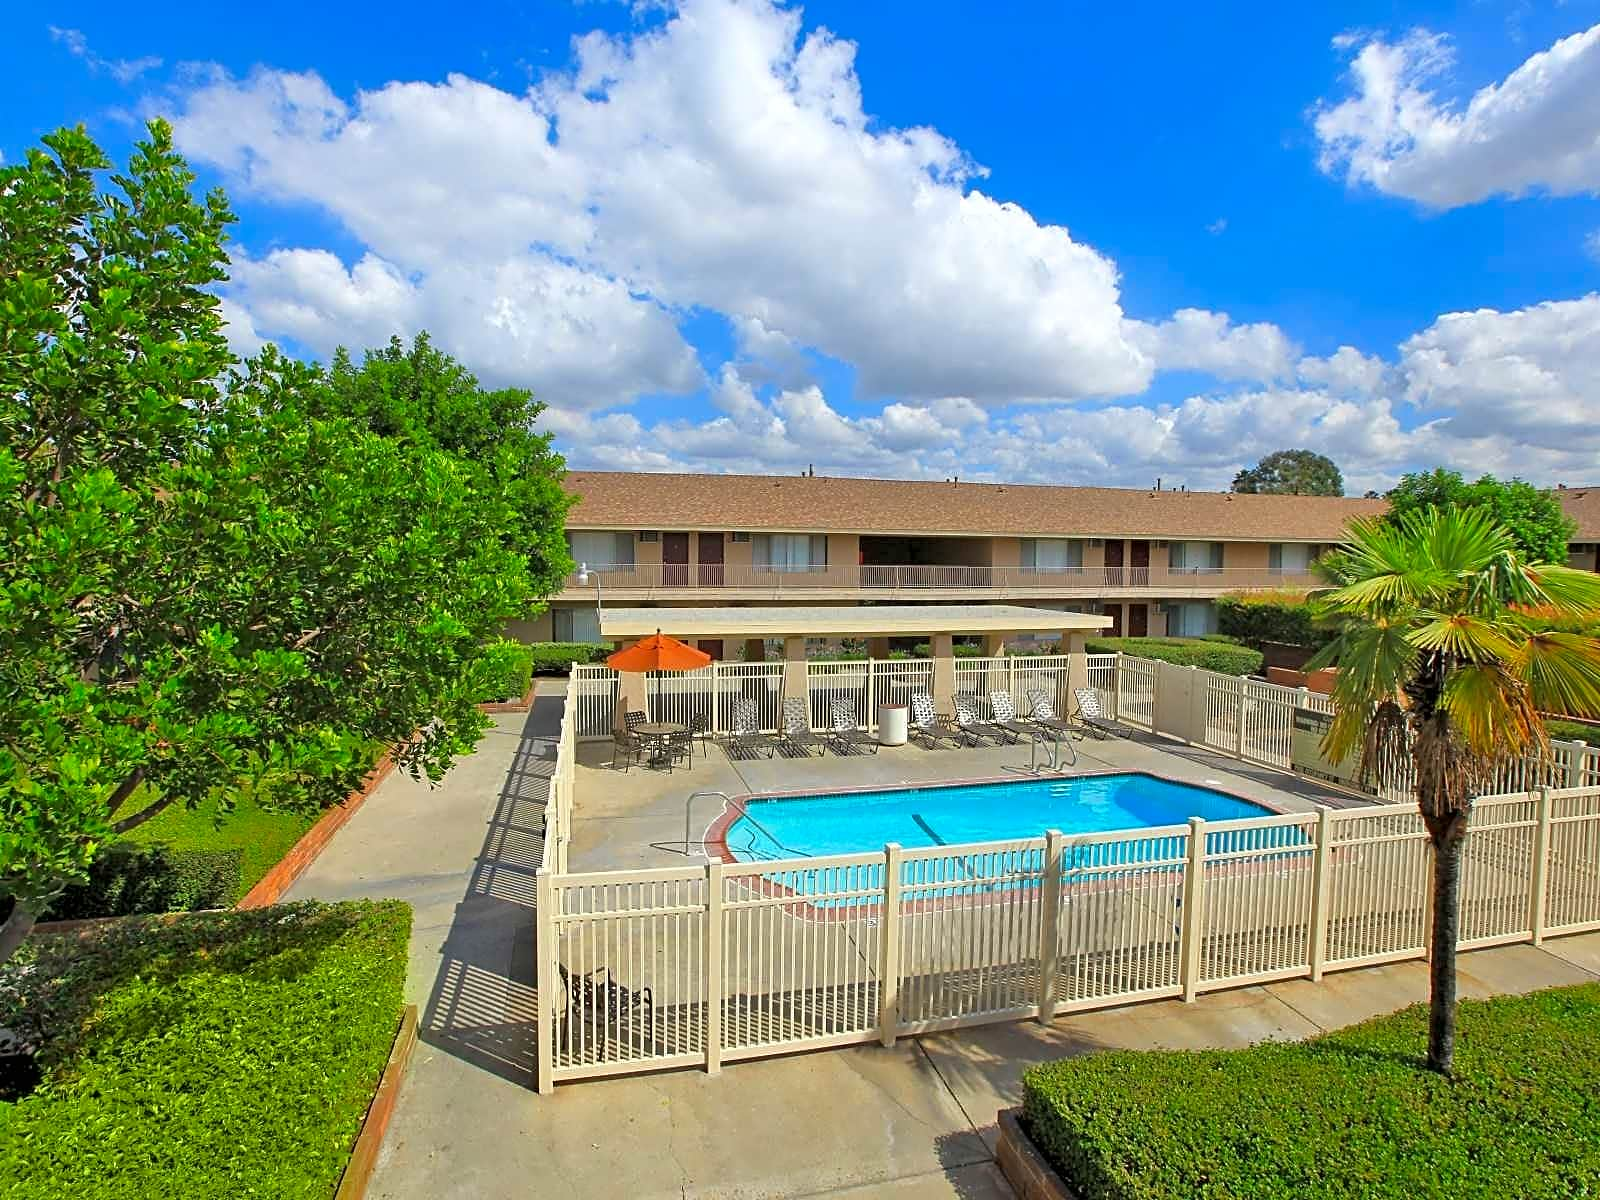 Pet Friendly Apartments In Tustin Ca Pet Friendly Houses For Rent